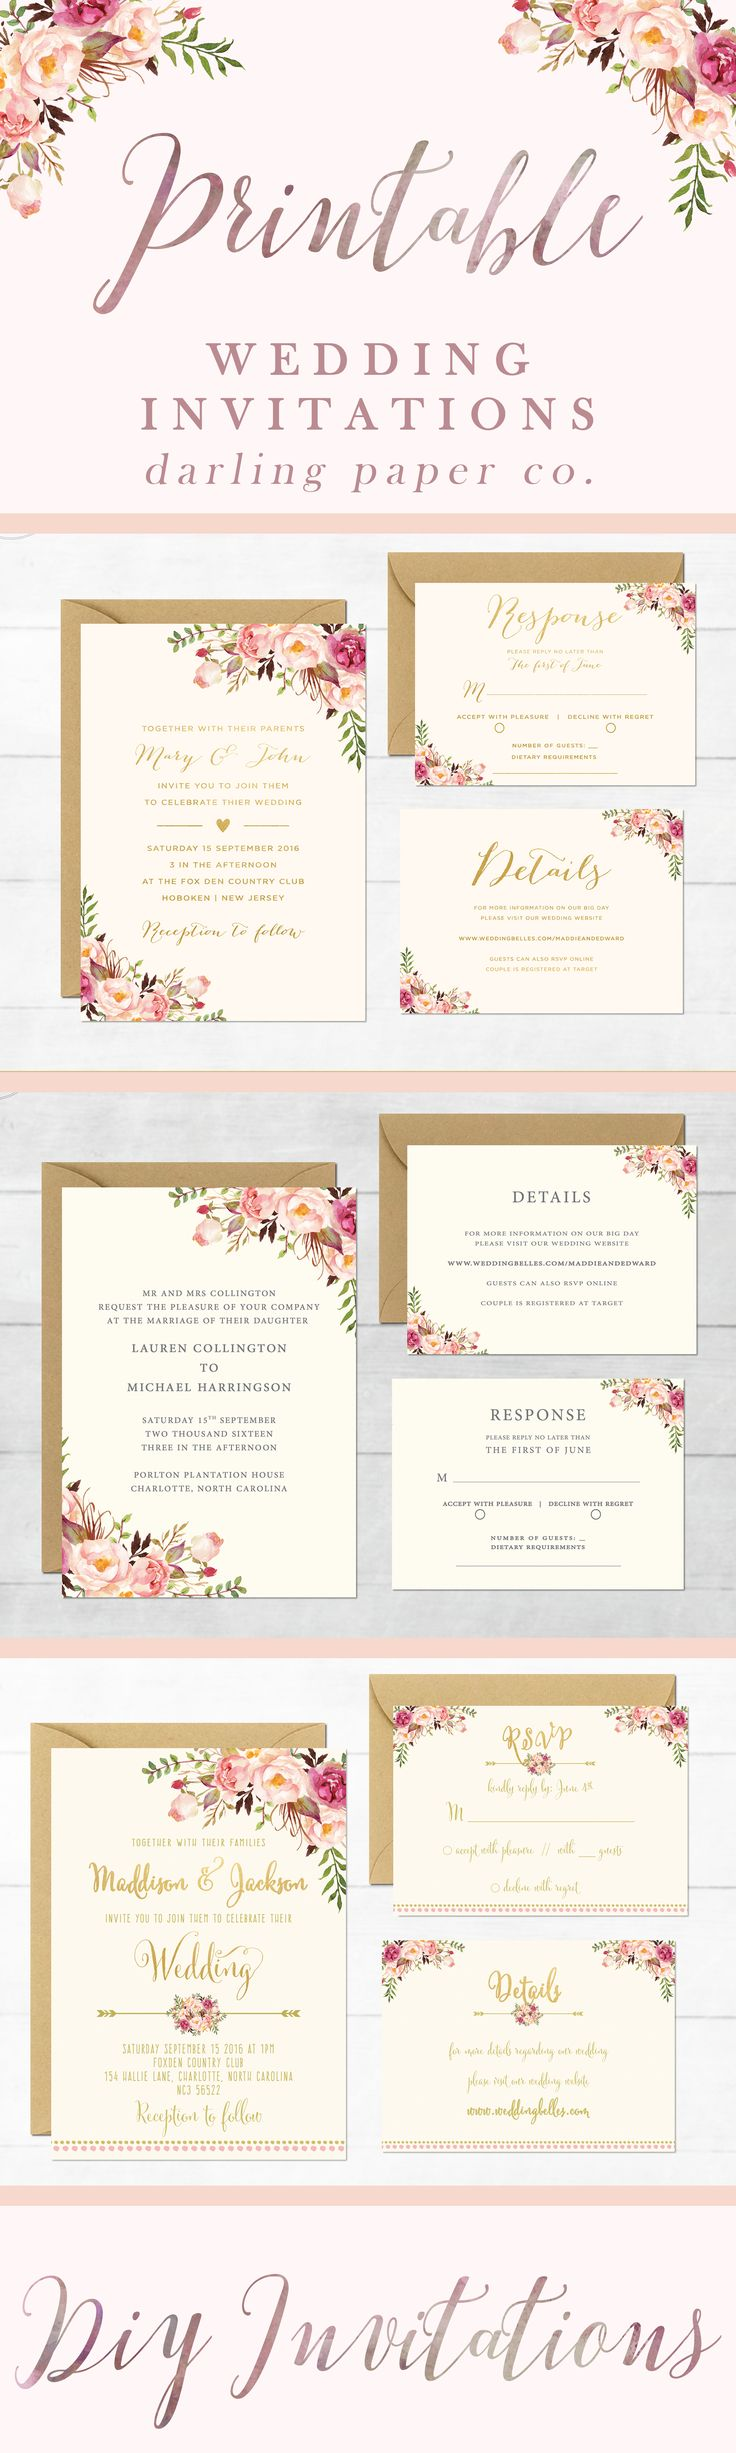 Wedding Invitations DIY Printable Wedding Invitations Floral Wedding Suite Boho Wedding Chic Wedding Invitations Rustic Wedding Invitations